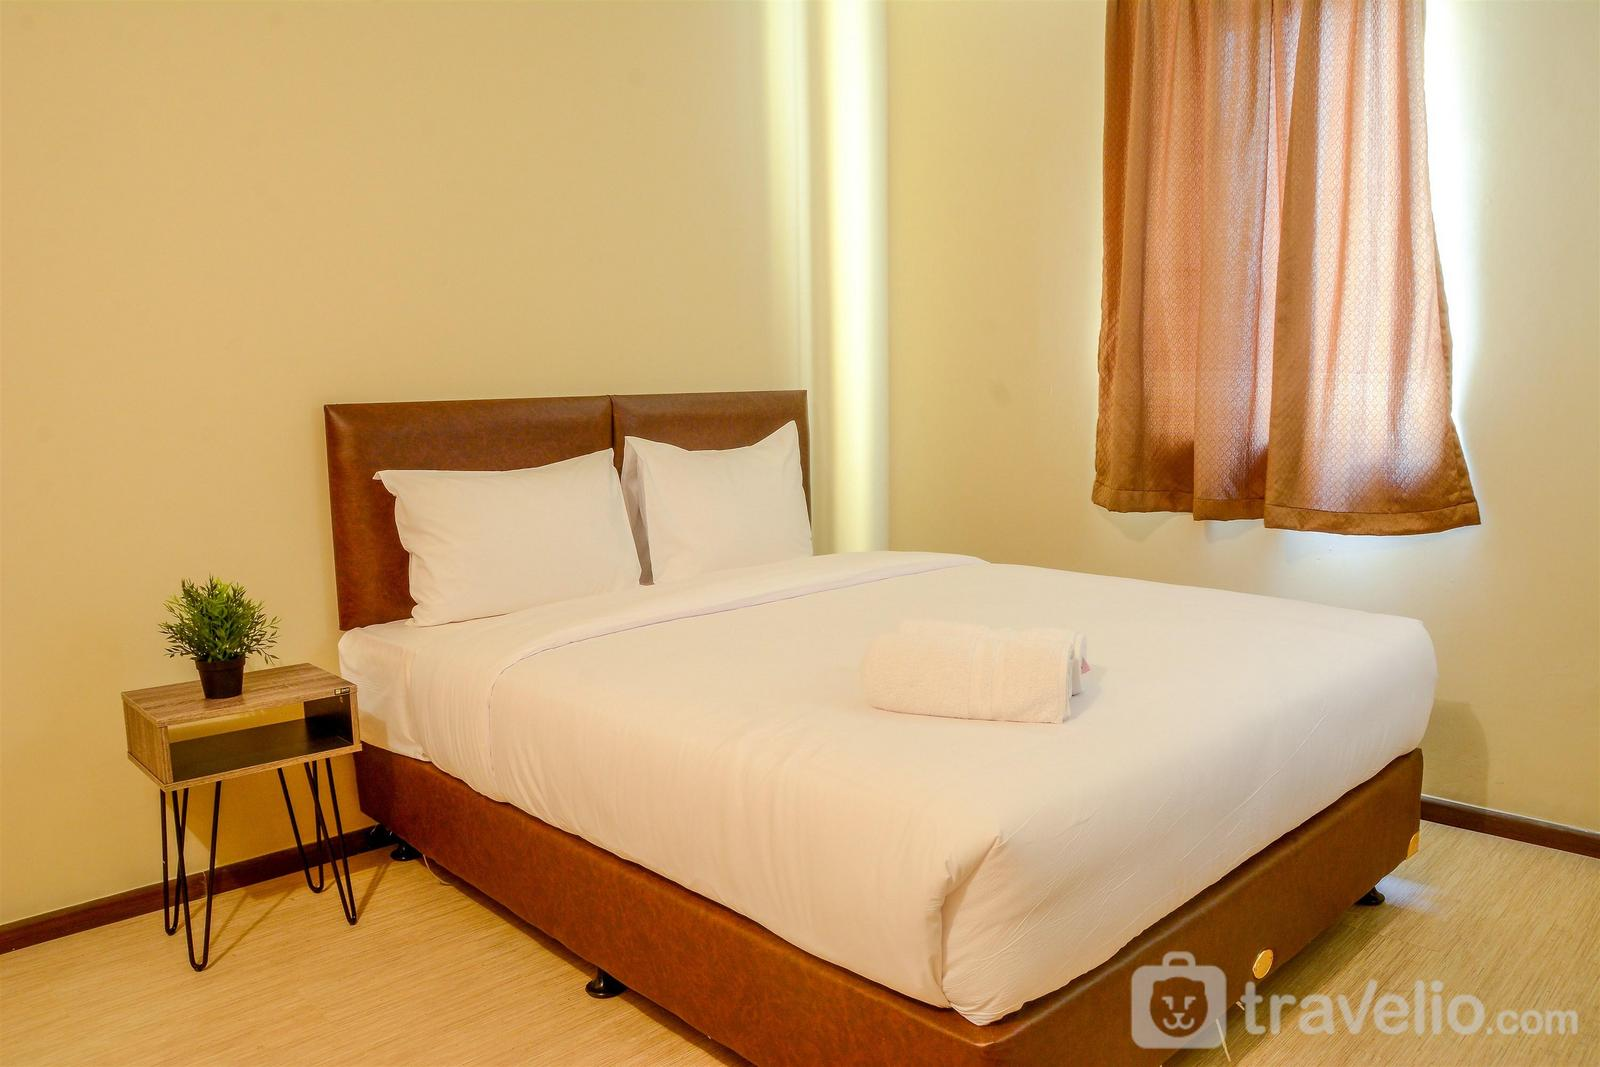 Grand Palace Kemayoran - Best 3BR Apartment Grand Palace Kemayoran with Sofabed By Travelio